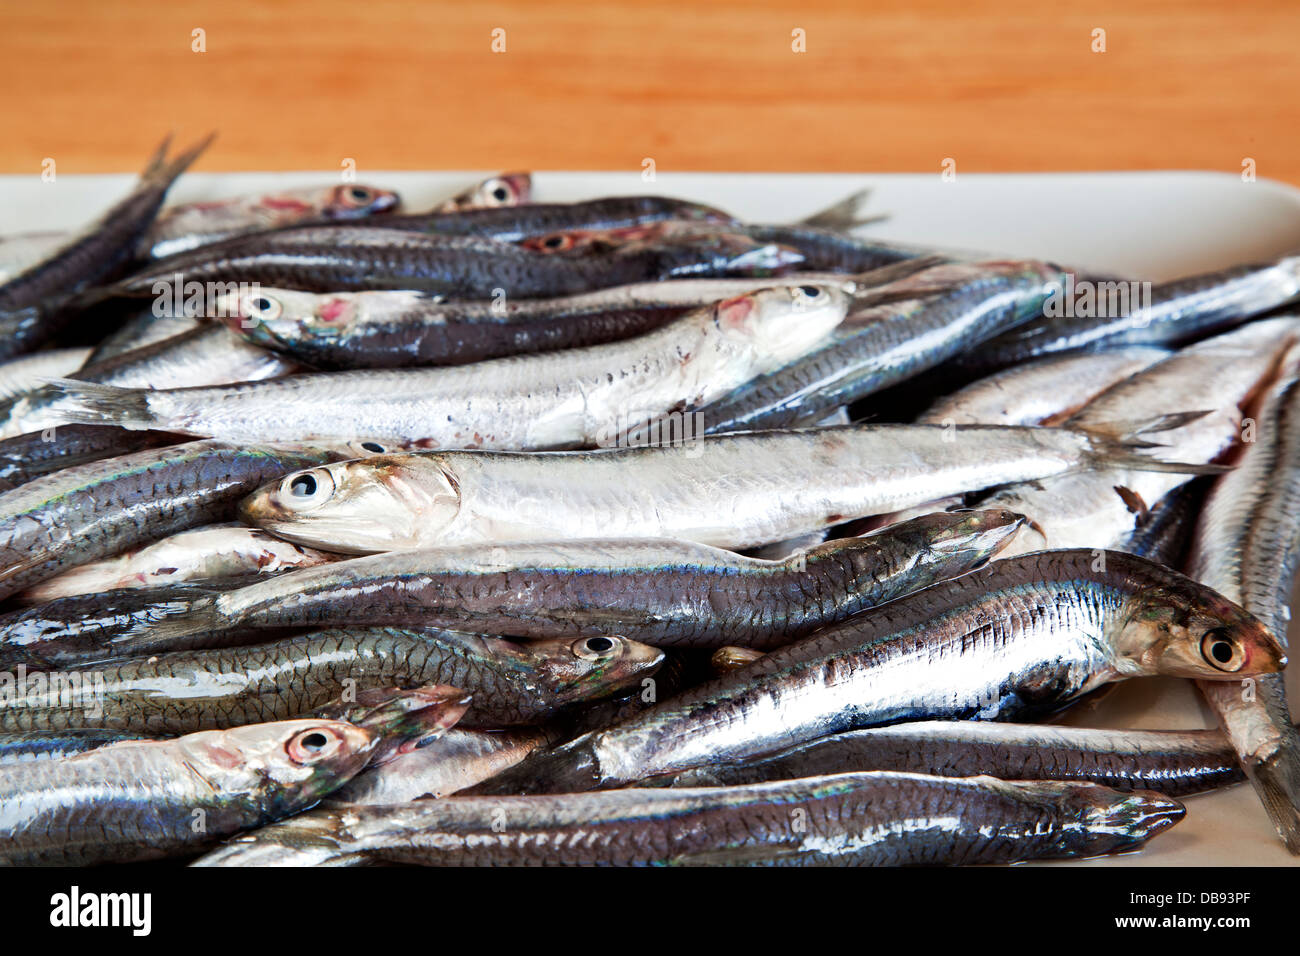 Anchovies. - Stock Image